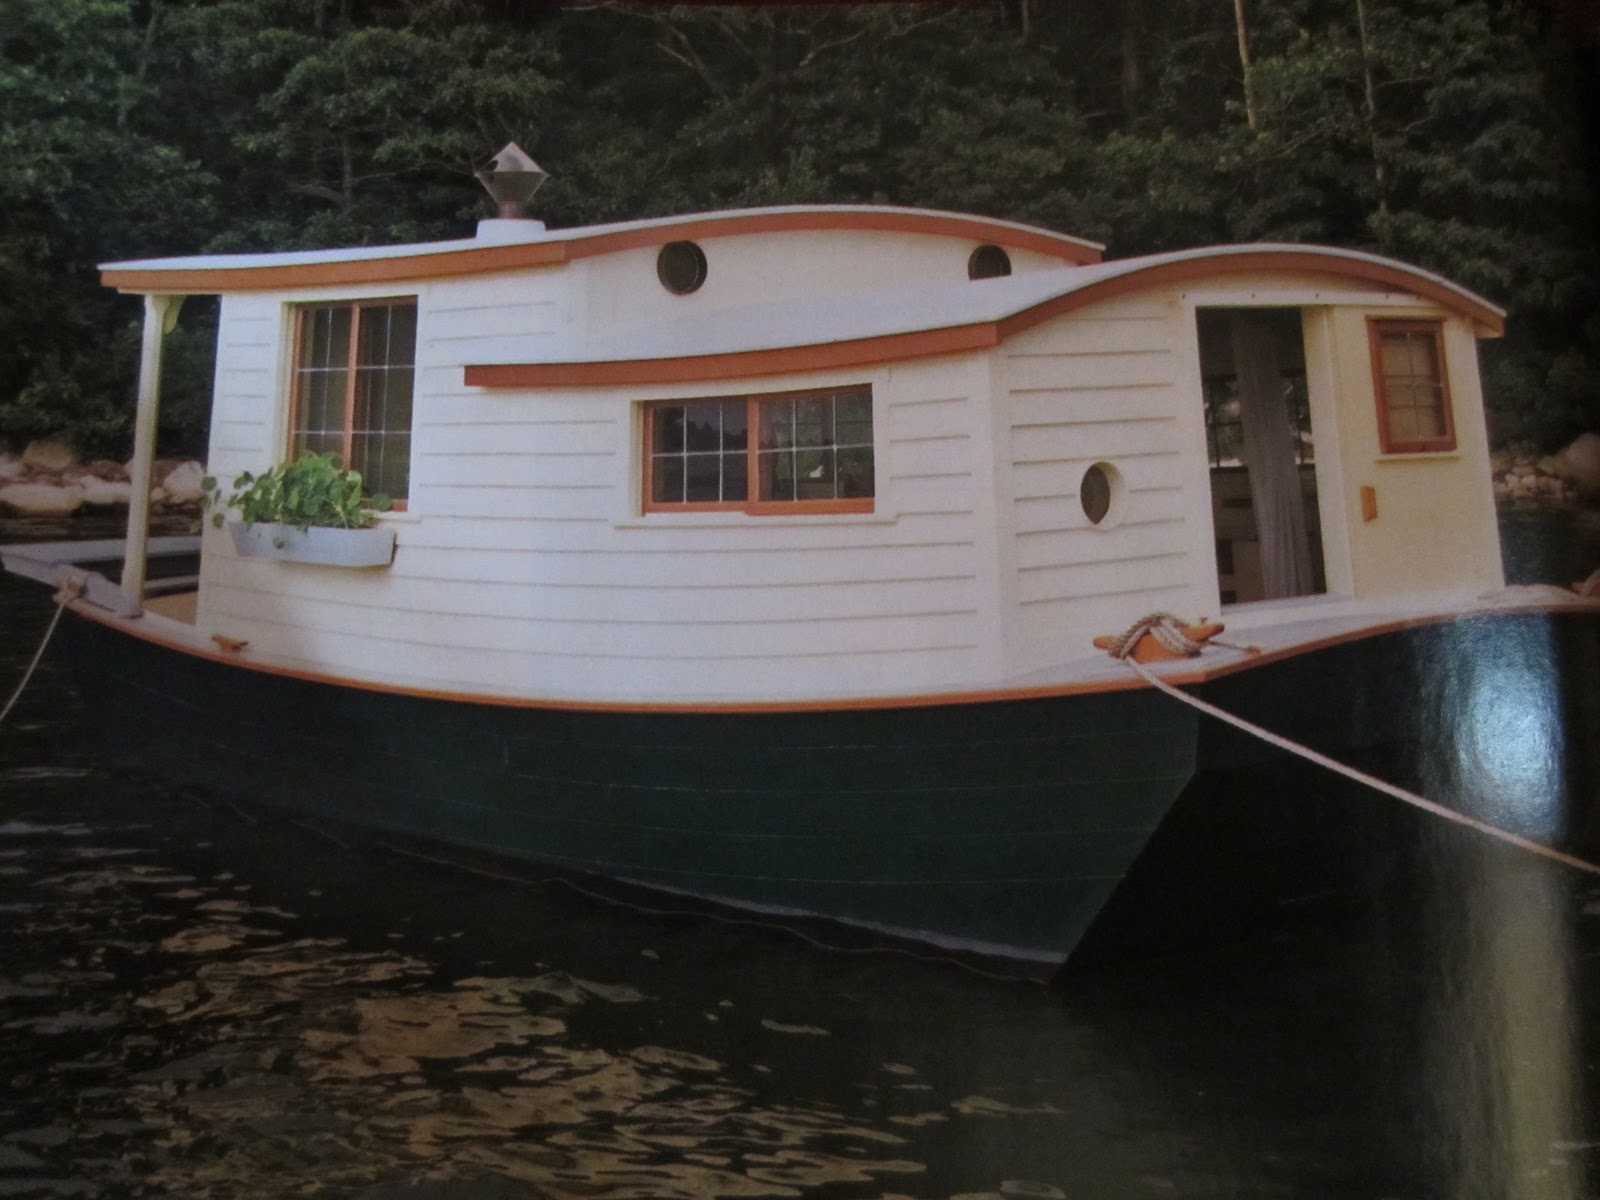 Relaxshacks.com: An UNBELIEVABLE Shantyboat/Houseboat in Wooden Boat ...